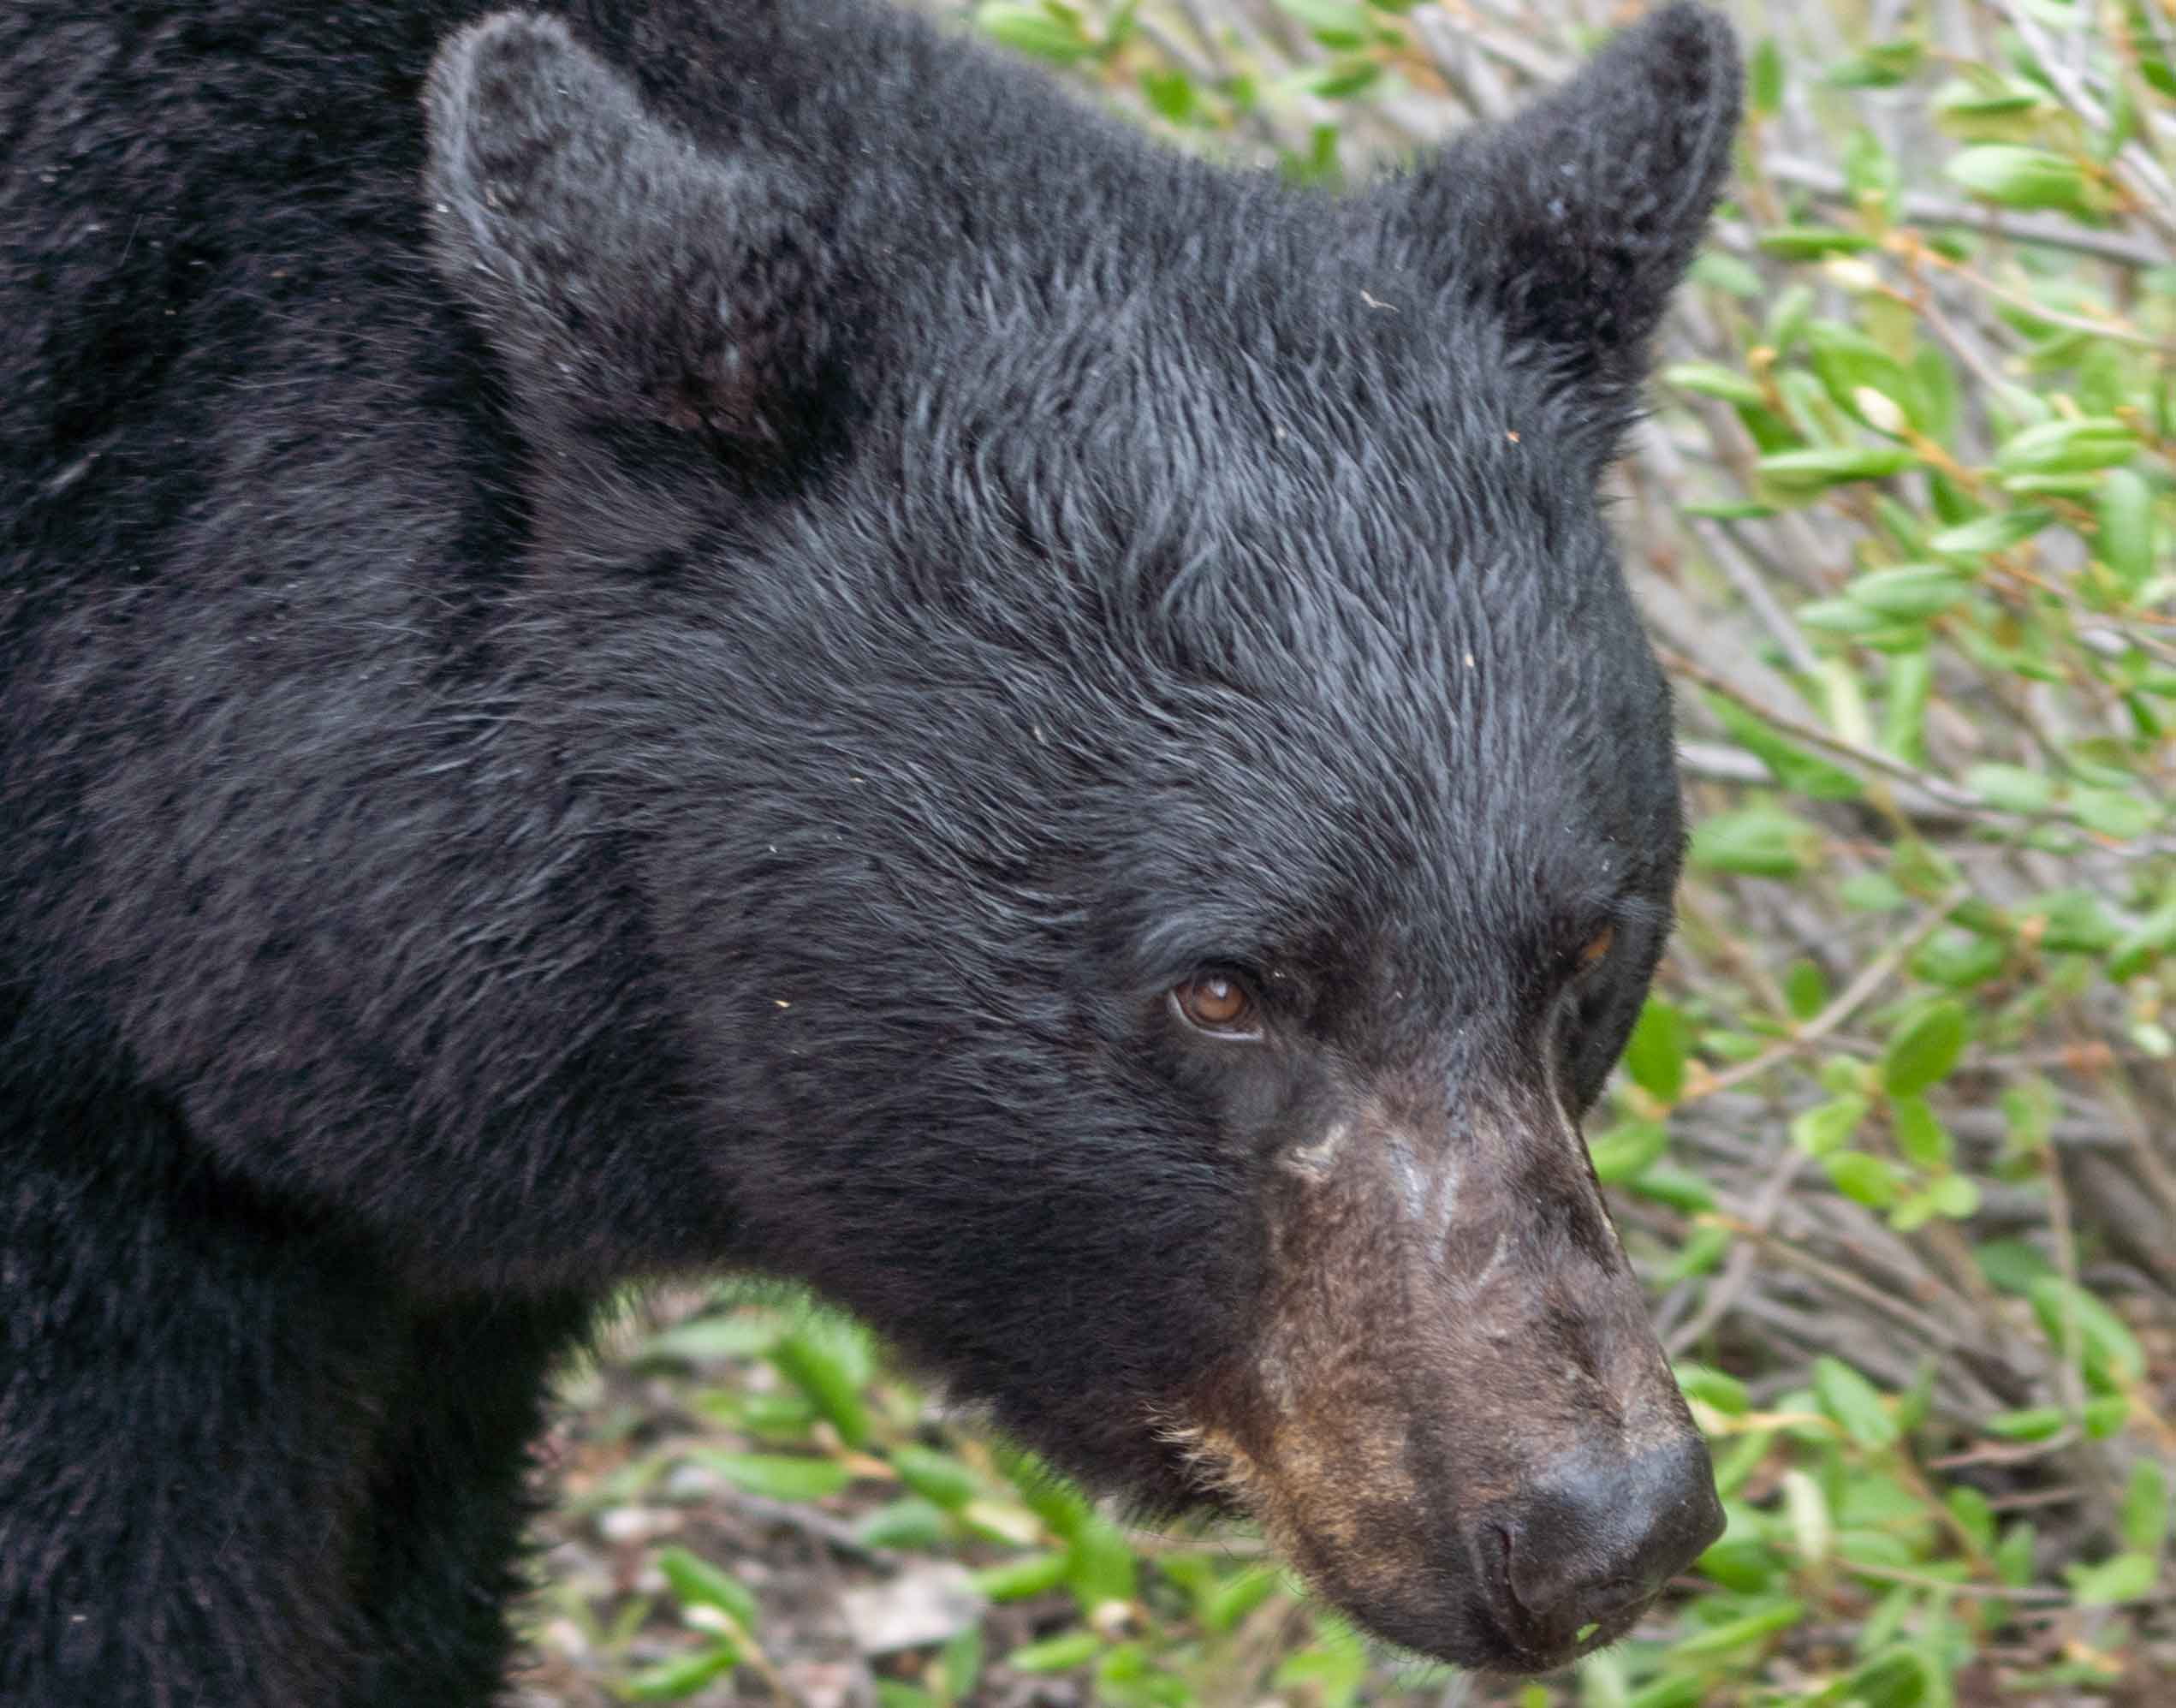 Bear close up by Jack Hawkins